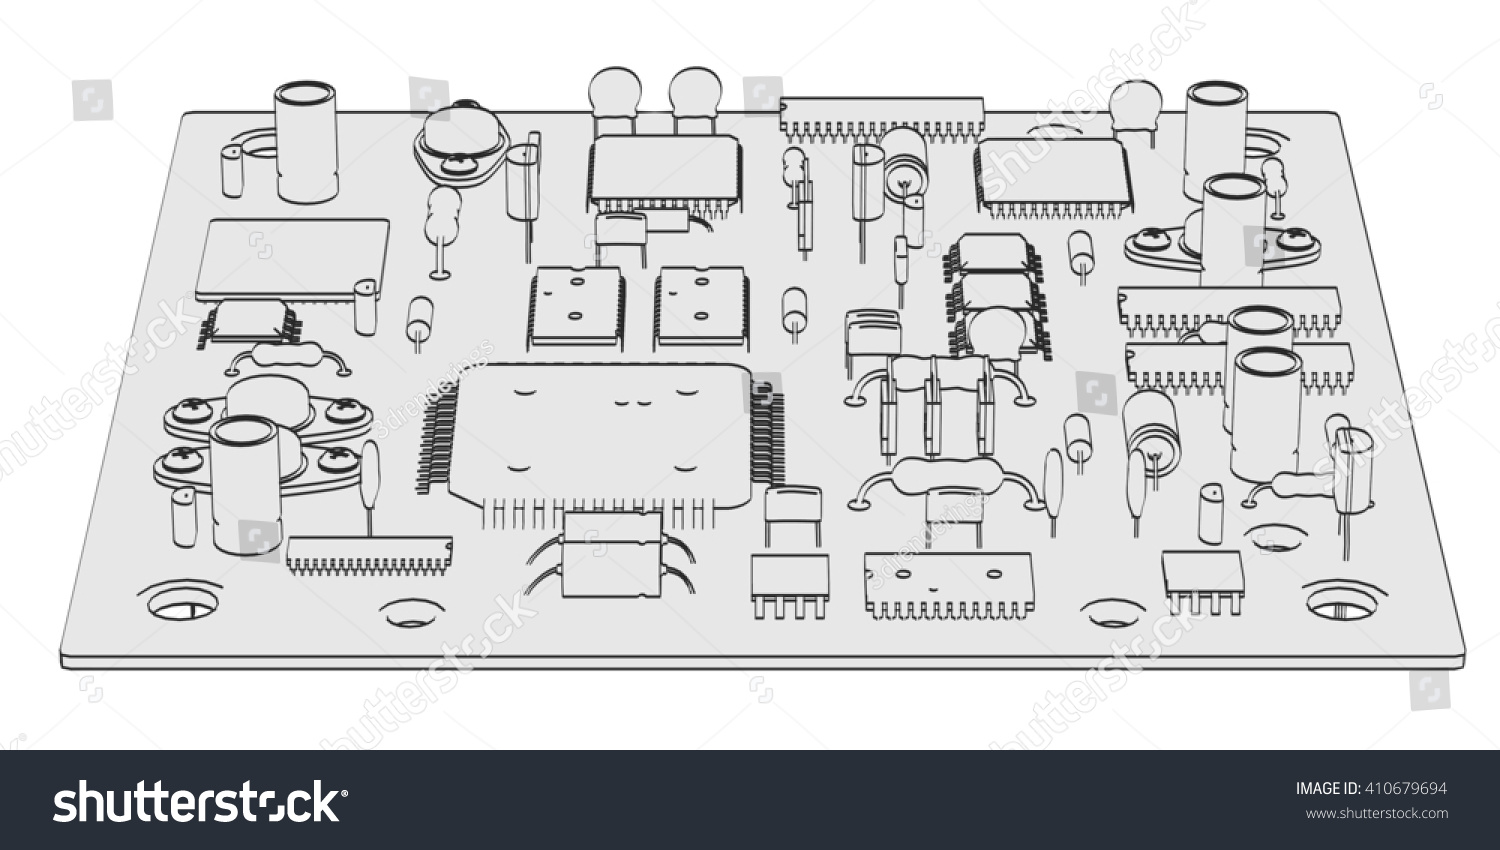 Outstanding Electronic Parts And Symbols Model - Wiring Diagram ...